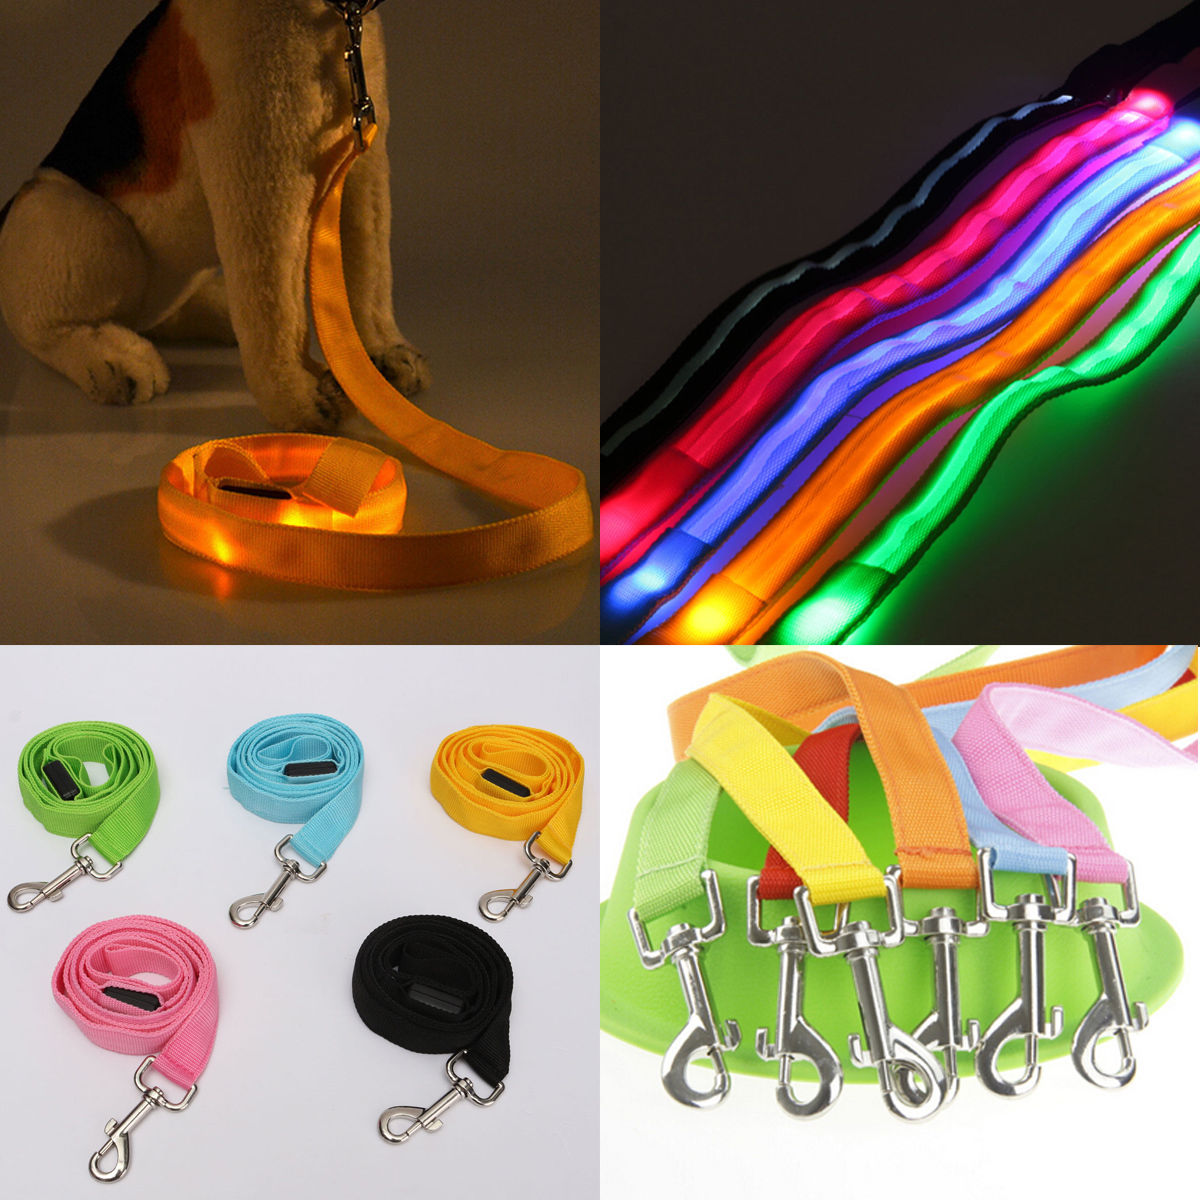 Ապրանքներ կենդանիների համար LED Pet Cat Dog LED LED Leash Night Safety Glow Leish Flashing Lighting Up 120cm Neylon Առաջնորդվում է LED Dog Dog Collar 7 Color